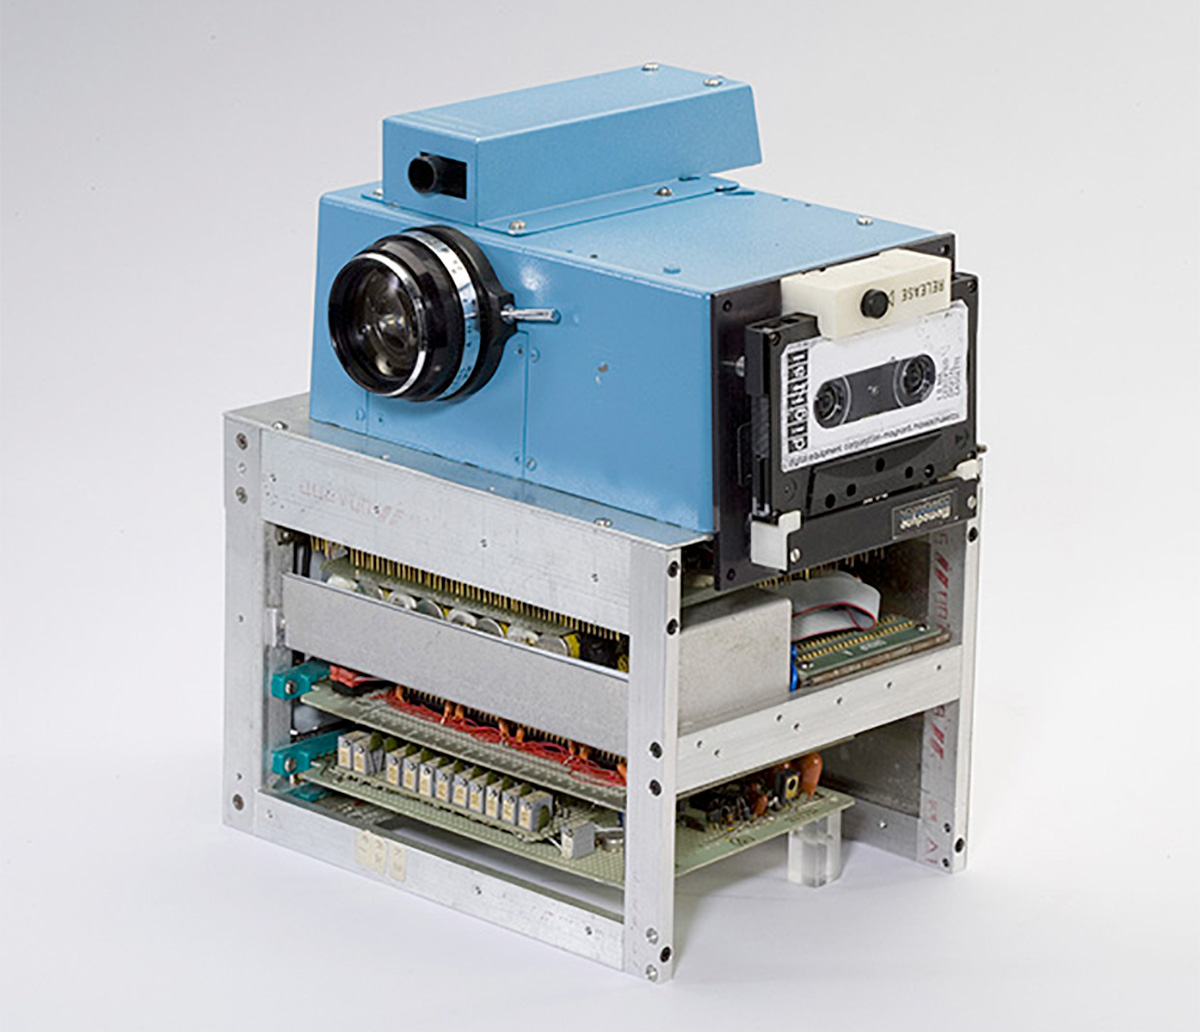 Photo of an old camera